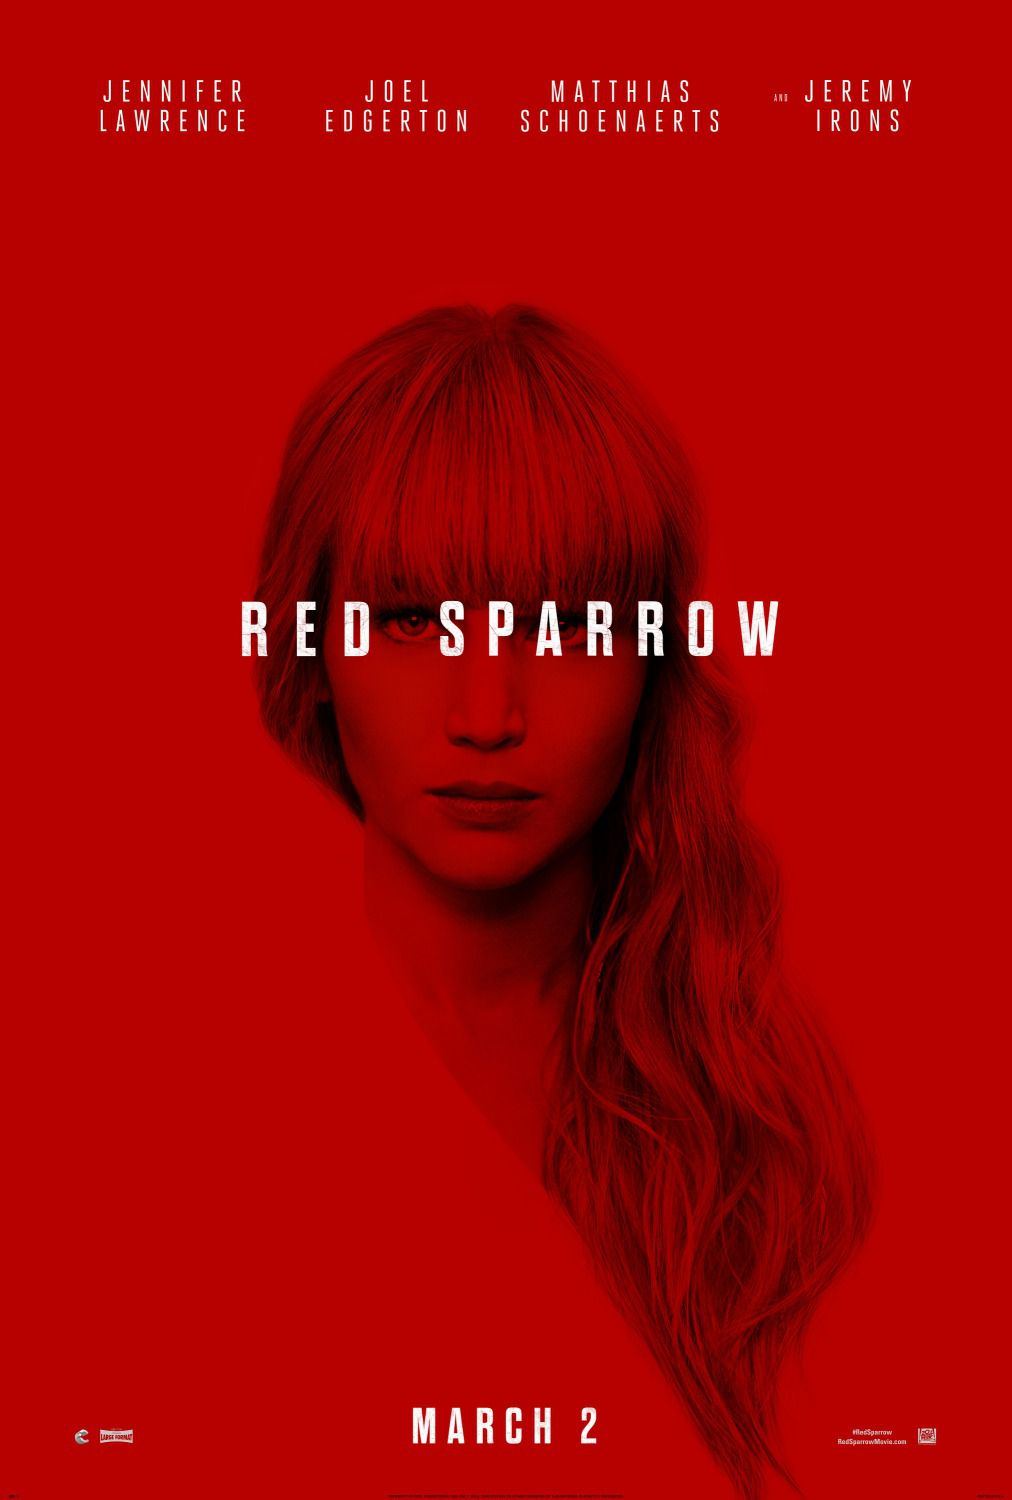 Red Sparrow - Jennifer Lawrence, Joel Edgerton, Matthias Schoenaerts, Jeremy Irons - film poster